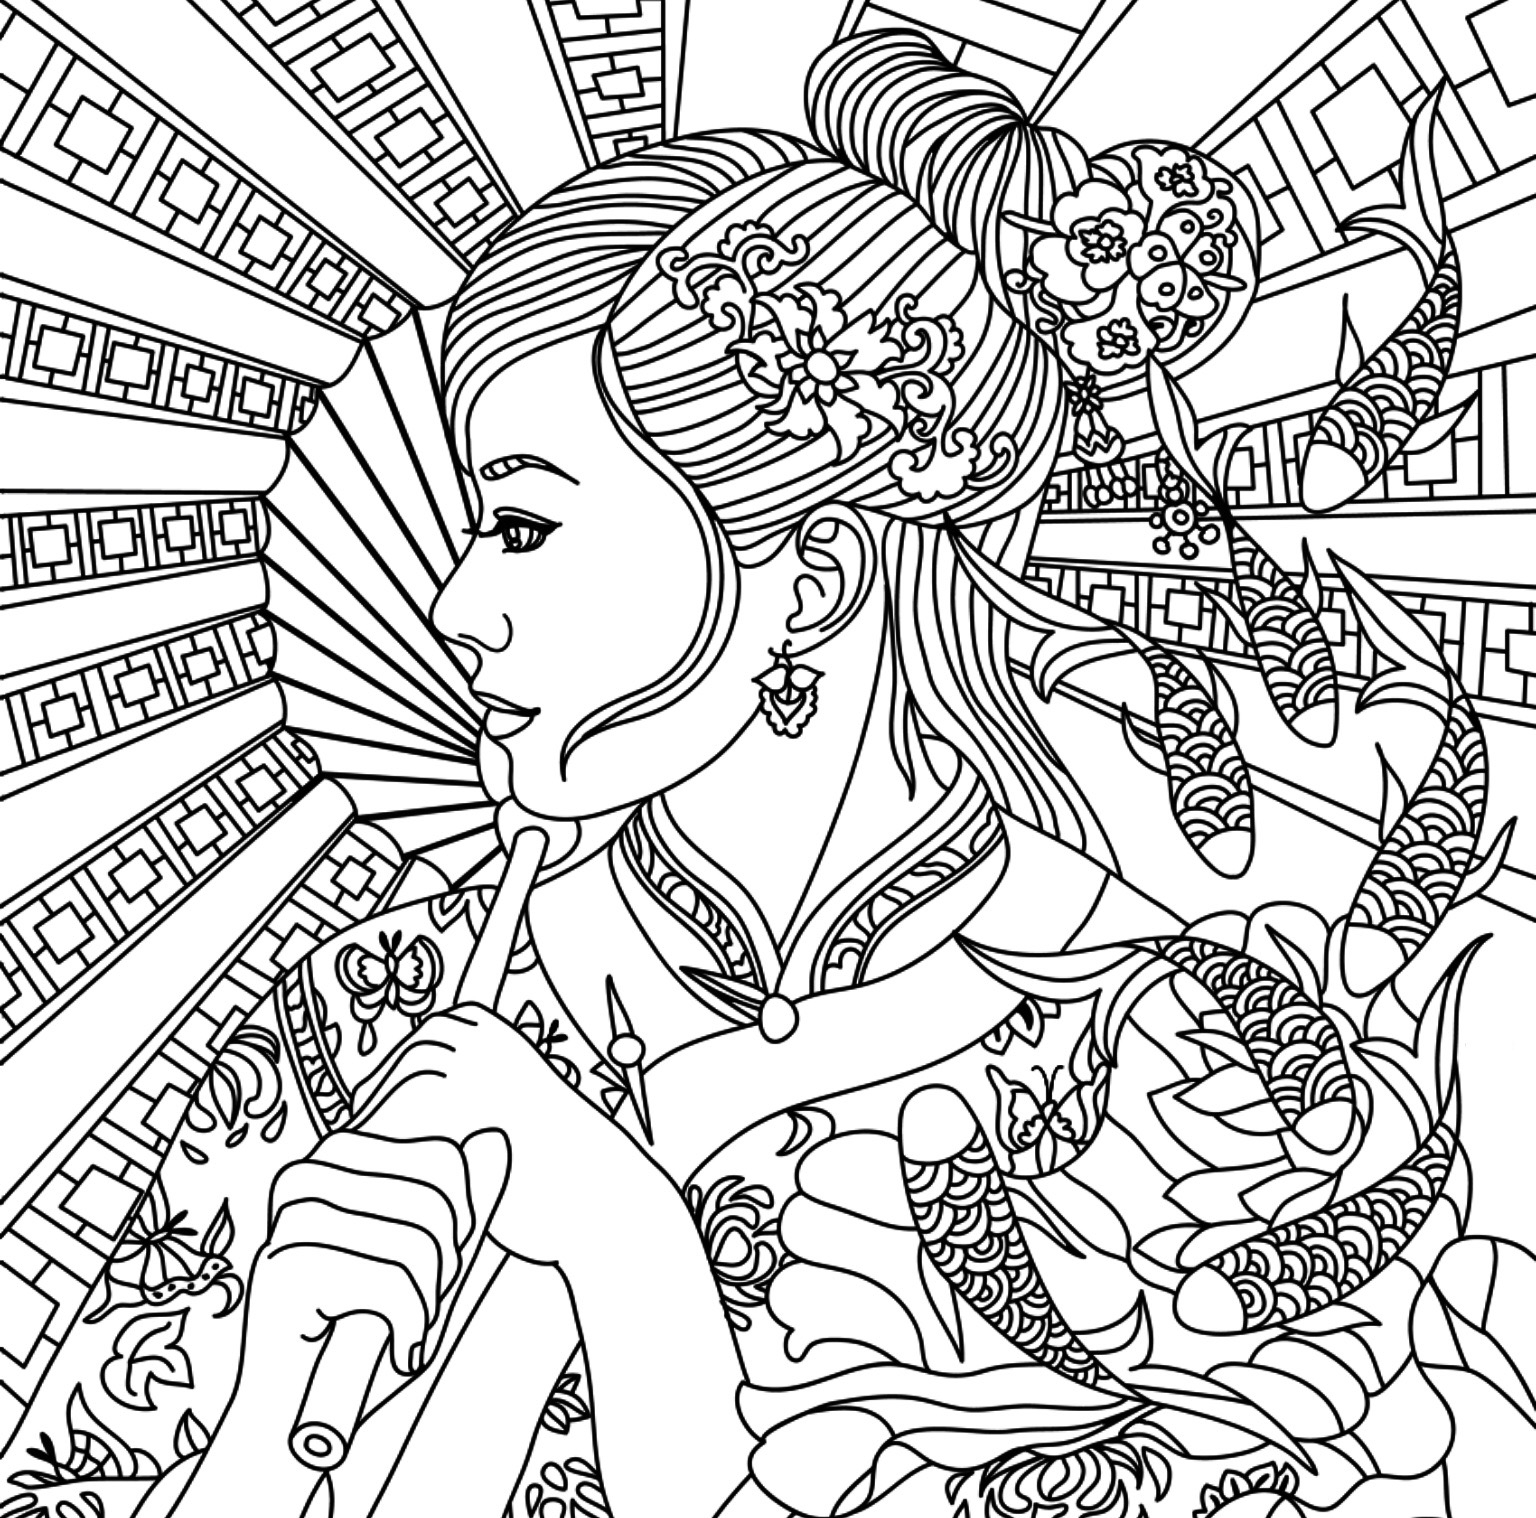 1536x1518 Peacock Coloring Pages Google Search Printable